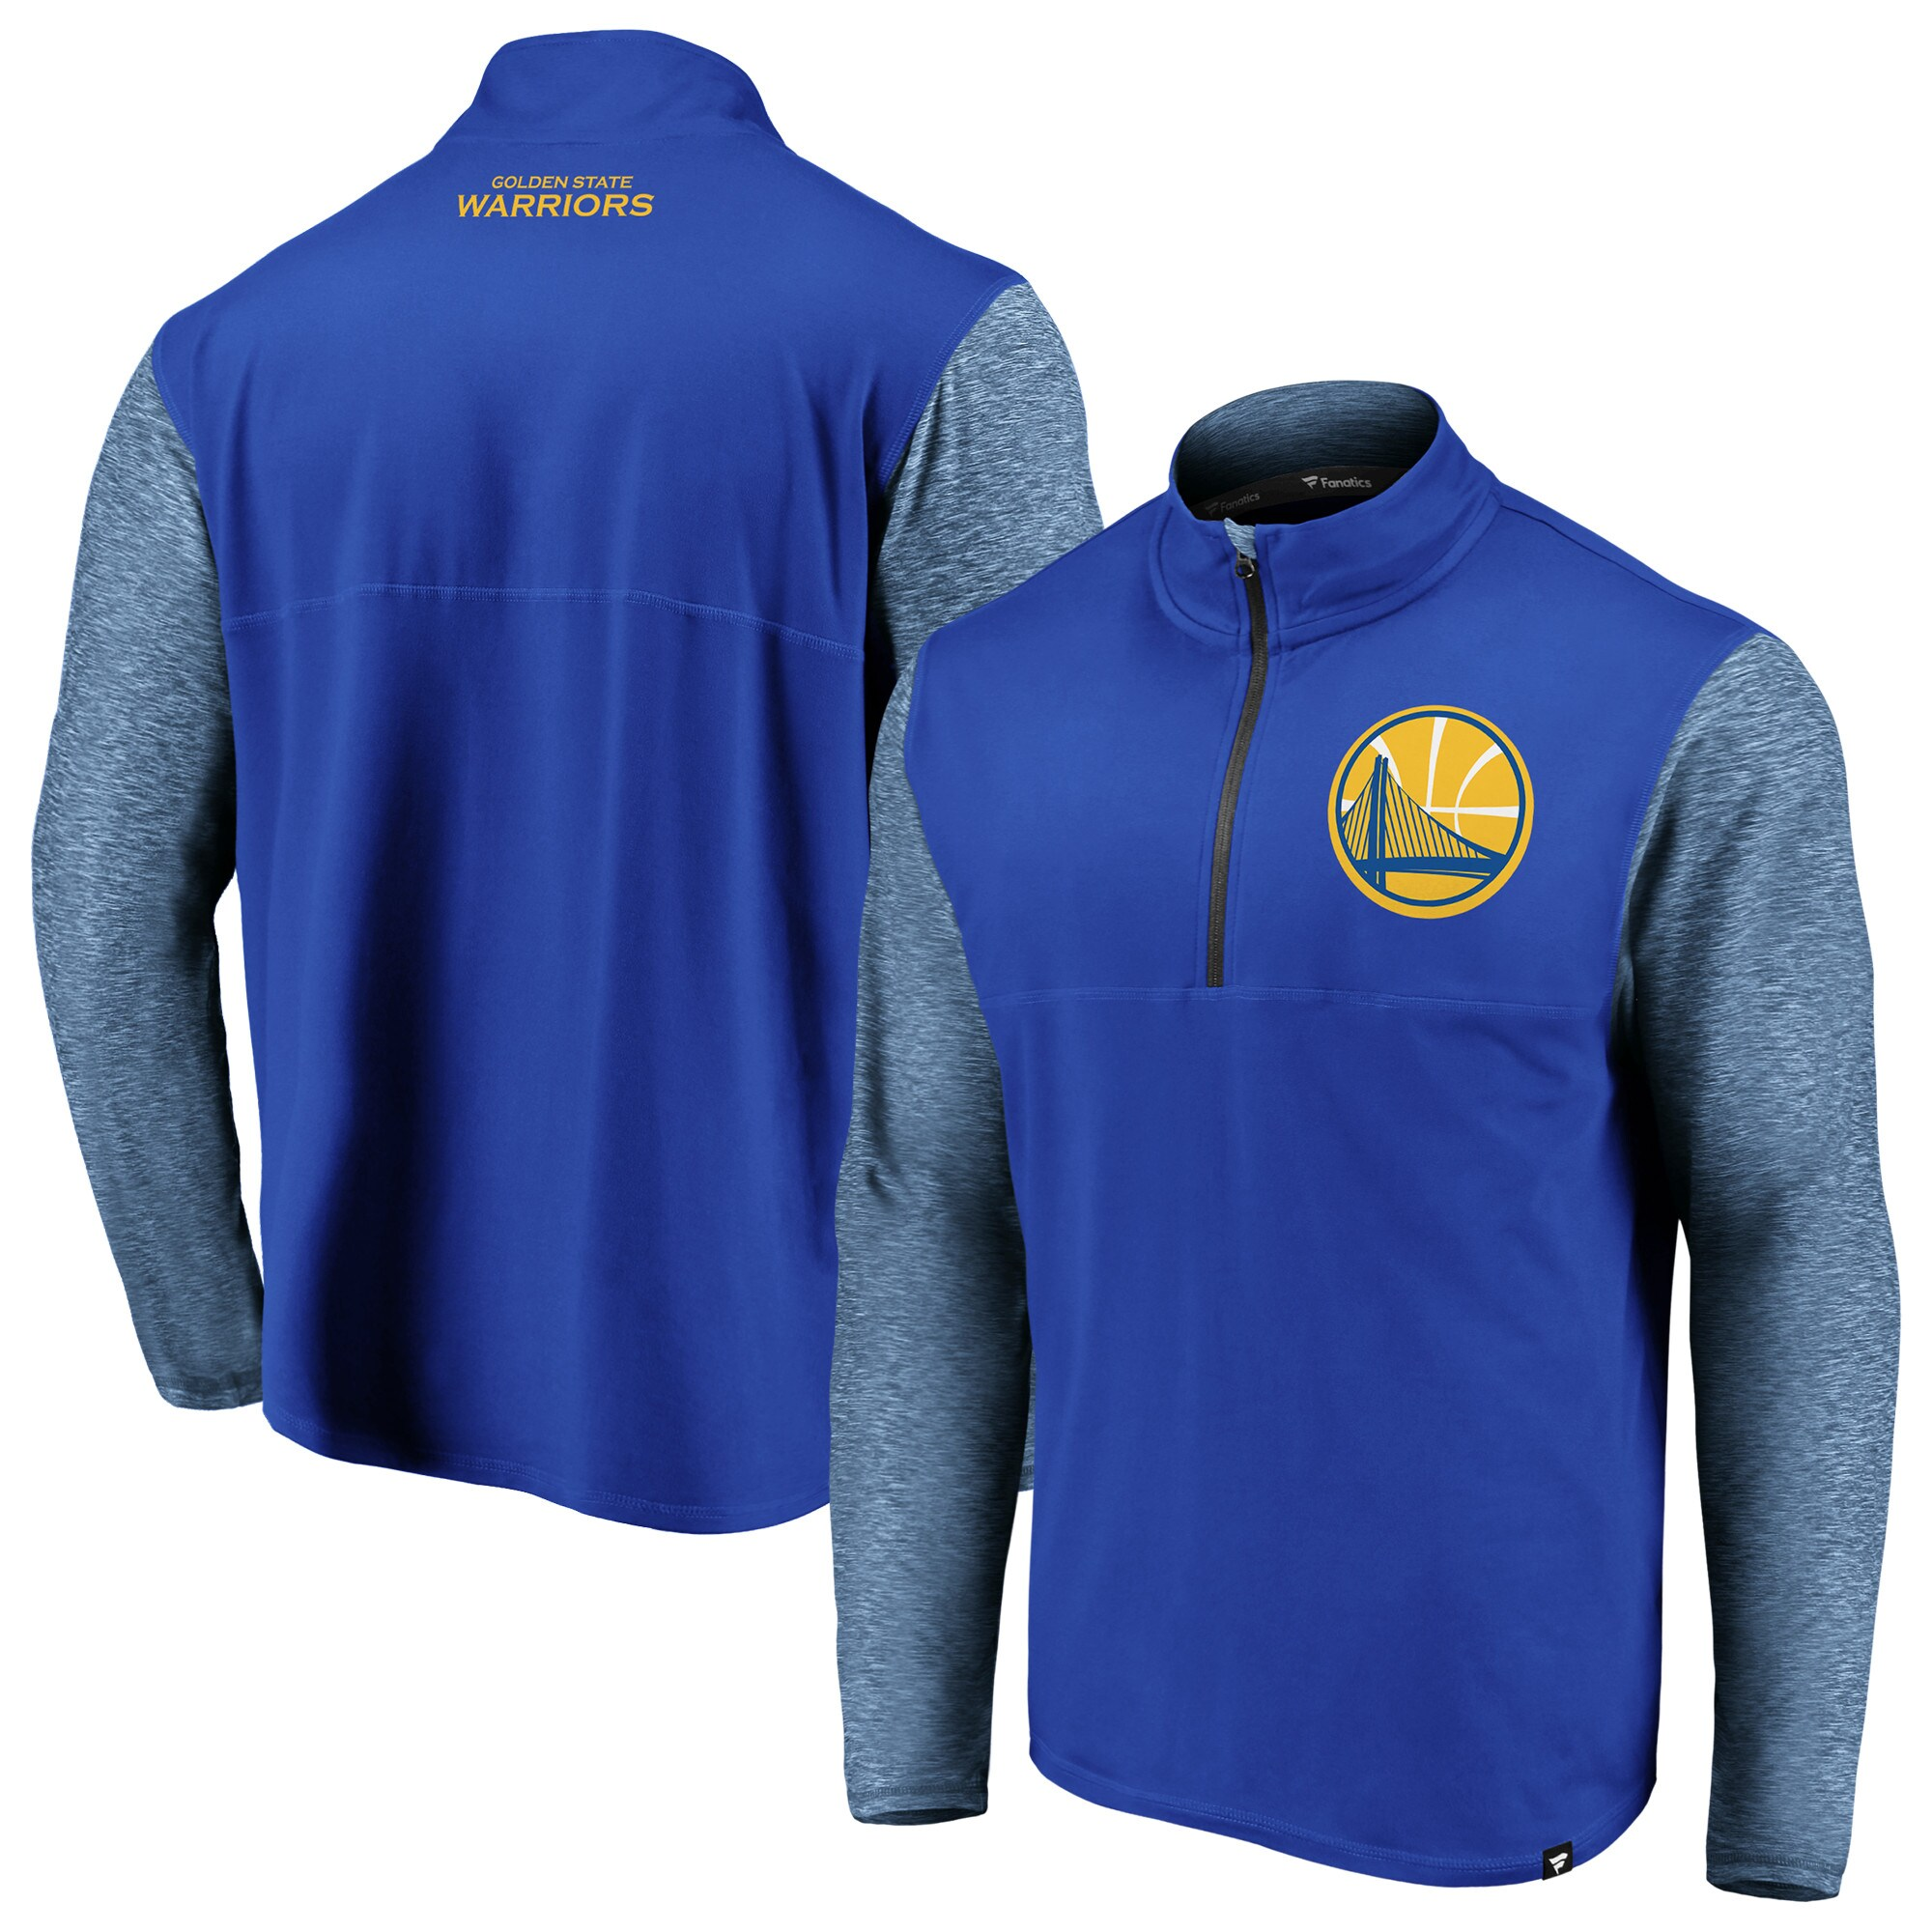 Golden State Warriors Fanatics Branded Big & Tall Made to Move Static Performance Quarter-Zip Pullover Jacket - Royal/Heathered Royal